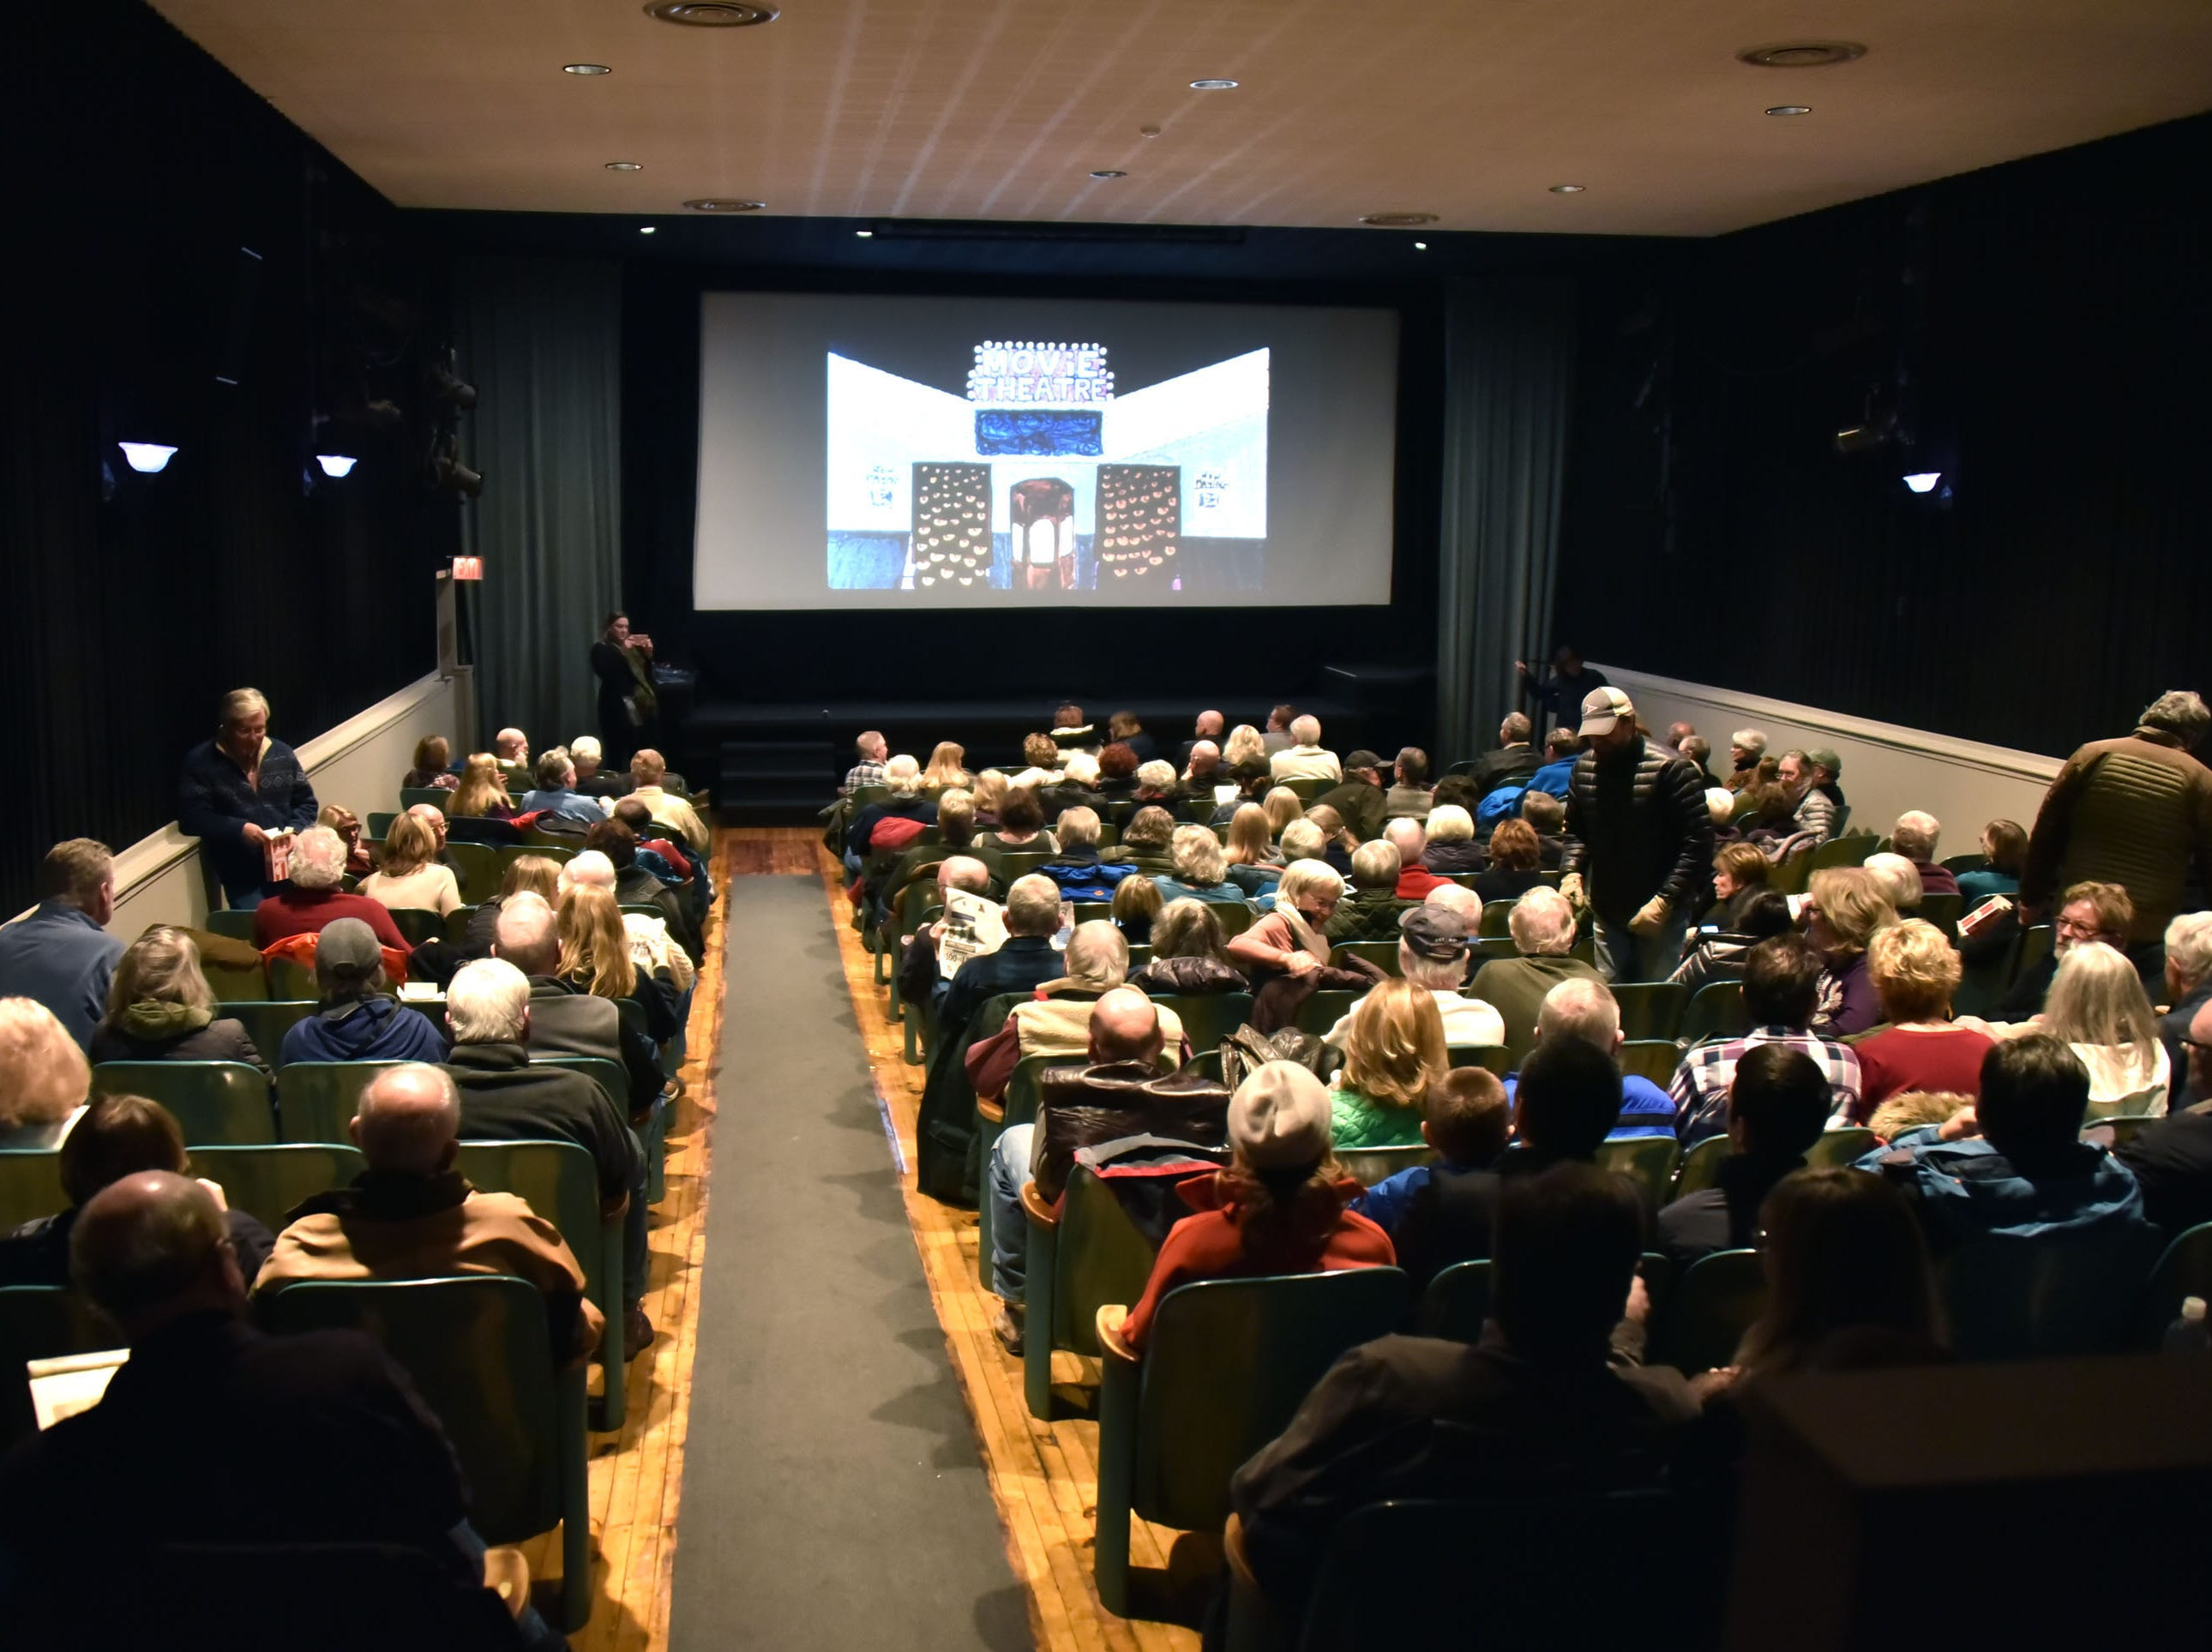 The 200-seat Bay theater in Suttons Bay held a community forum Tuesday, Dec. 11, 2018 in an attempt to find a new owner for the venue, the only movie house in Leelanau County.